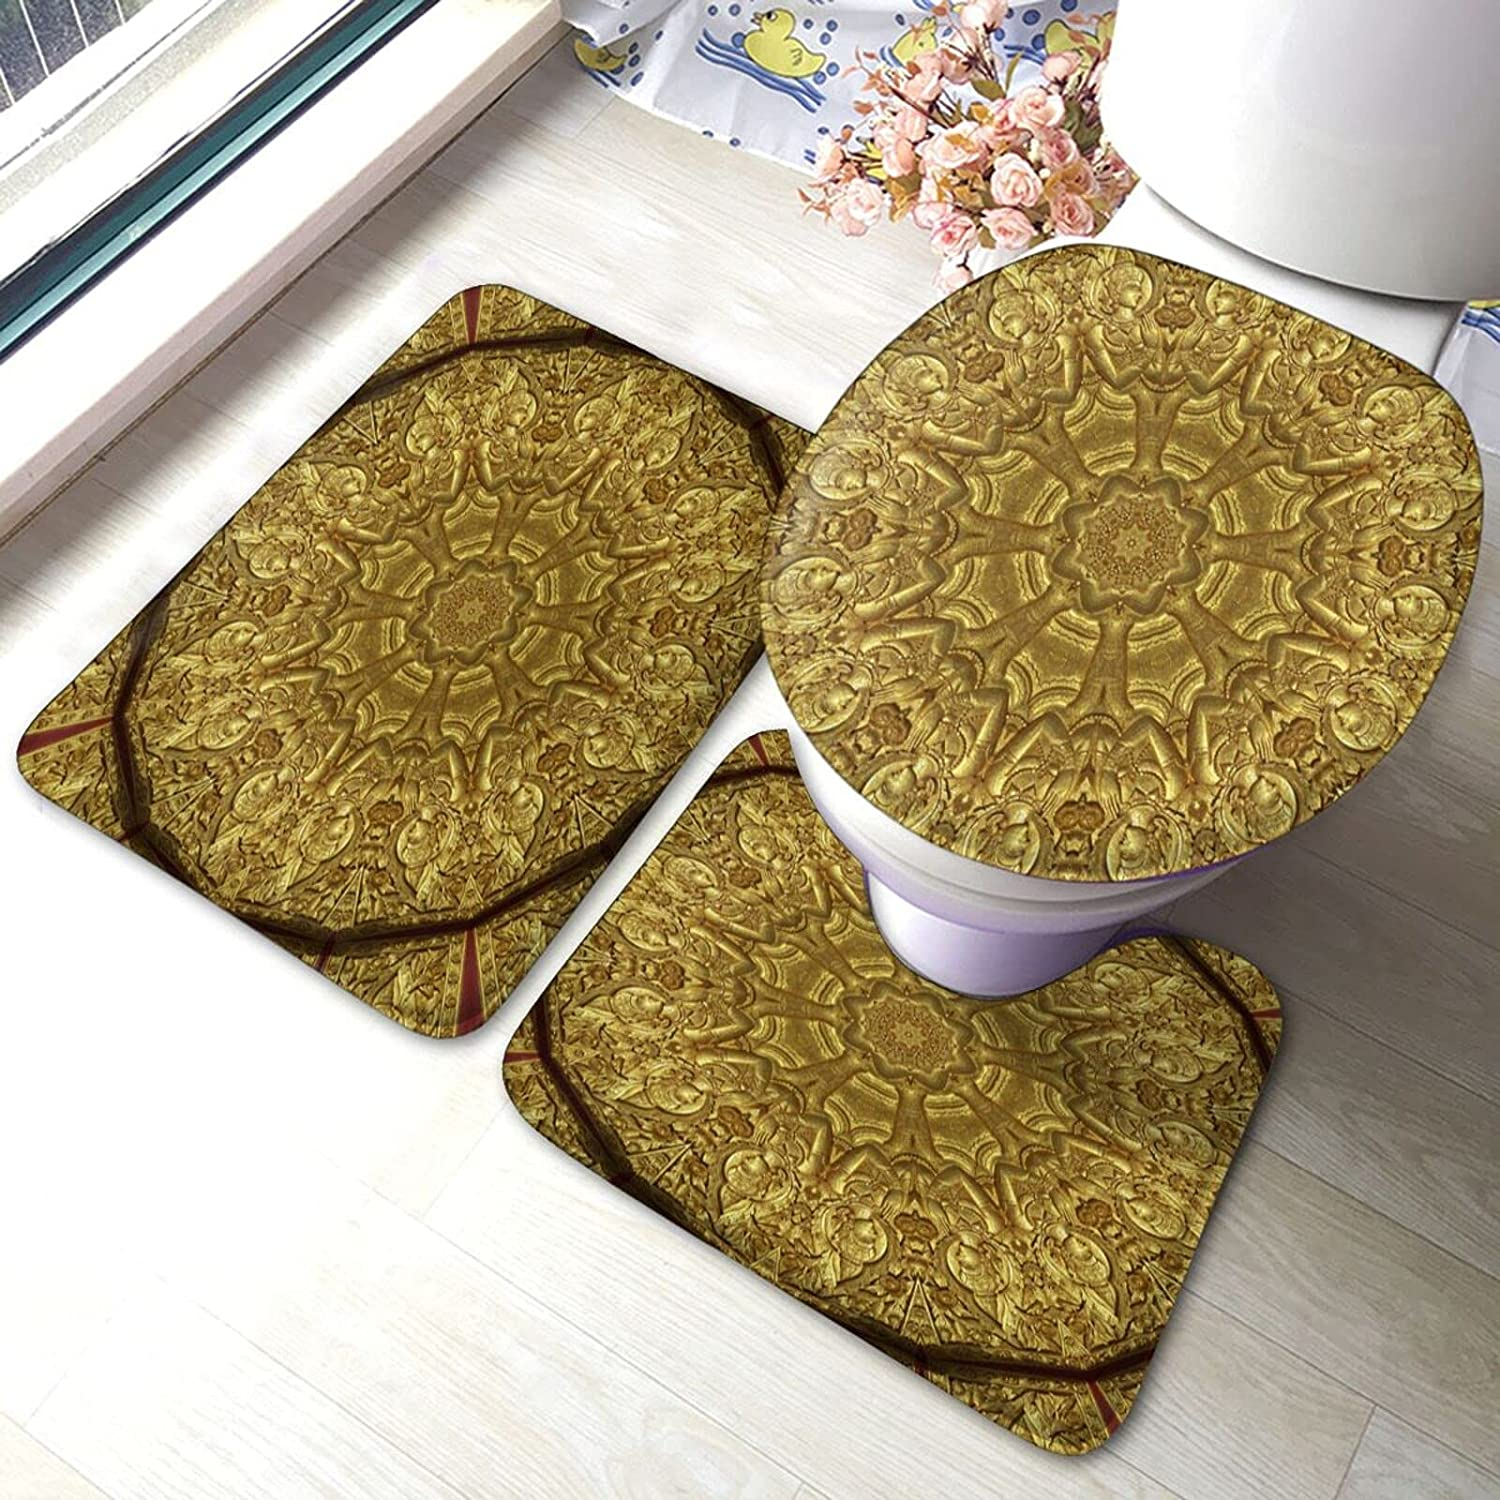 Shipping included Max 46% OFF Bathroom Mat Sets 3 Piece Set Rugs A Foam Memory Matches